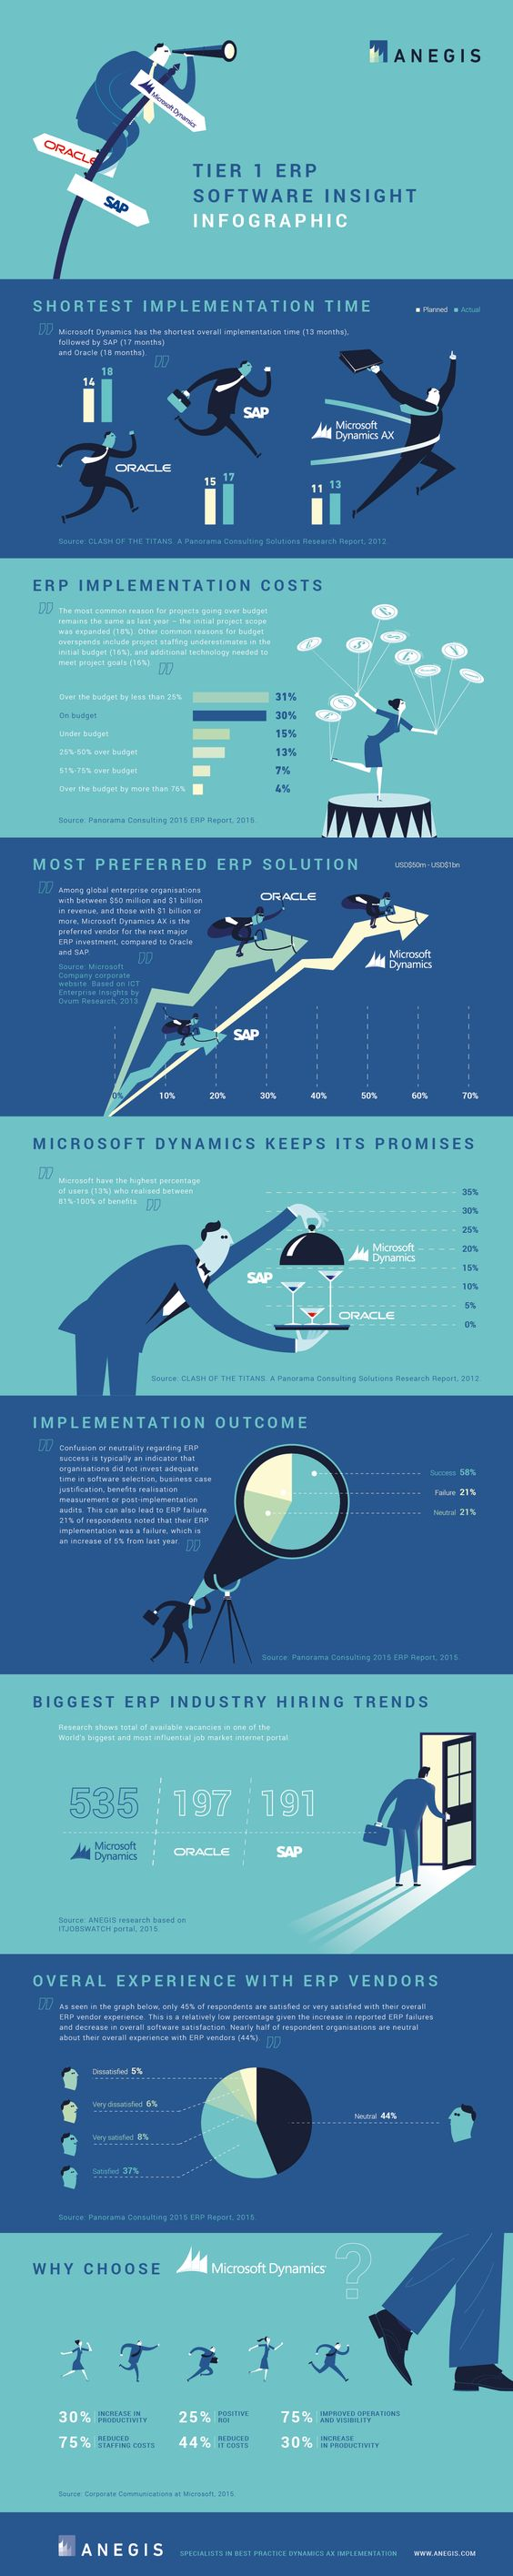 Tier 1 ERP Software Insight #infographic #Business